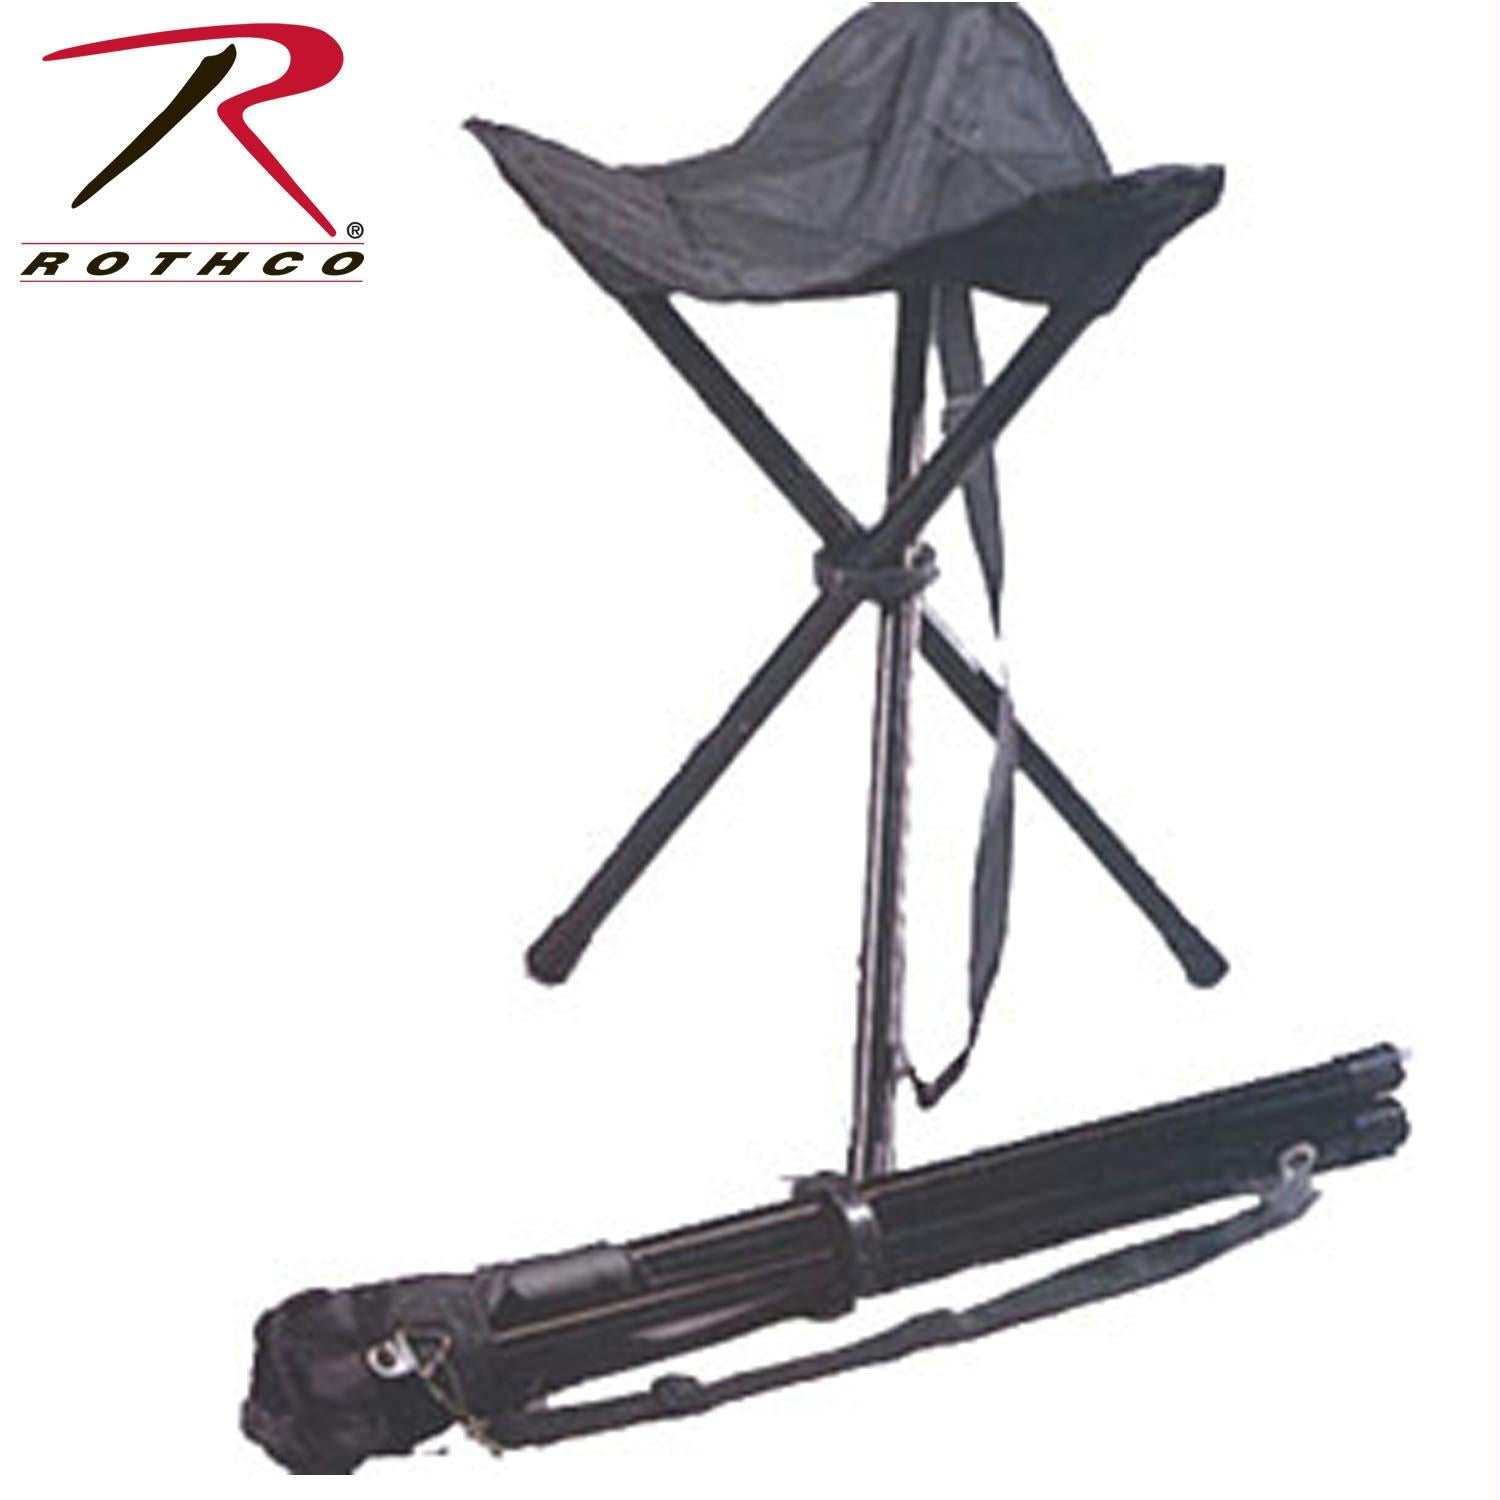 Rothco Collapsible Stool With Carry Strap - Black